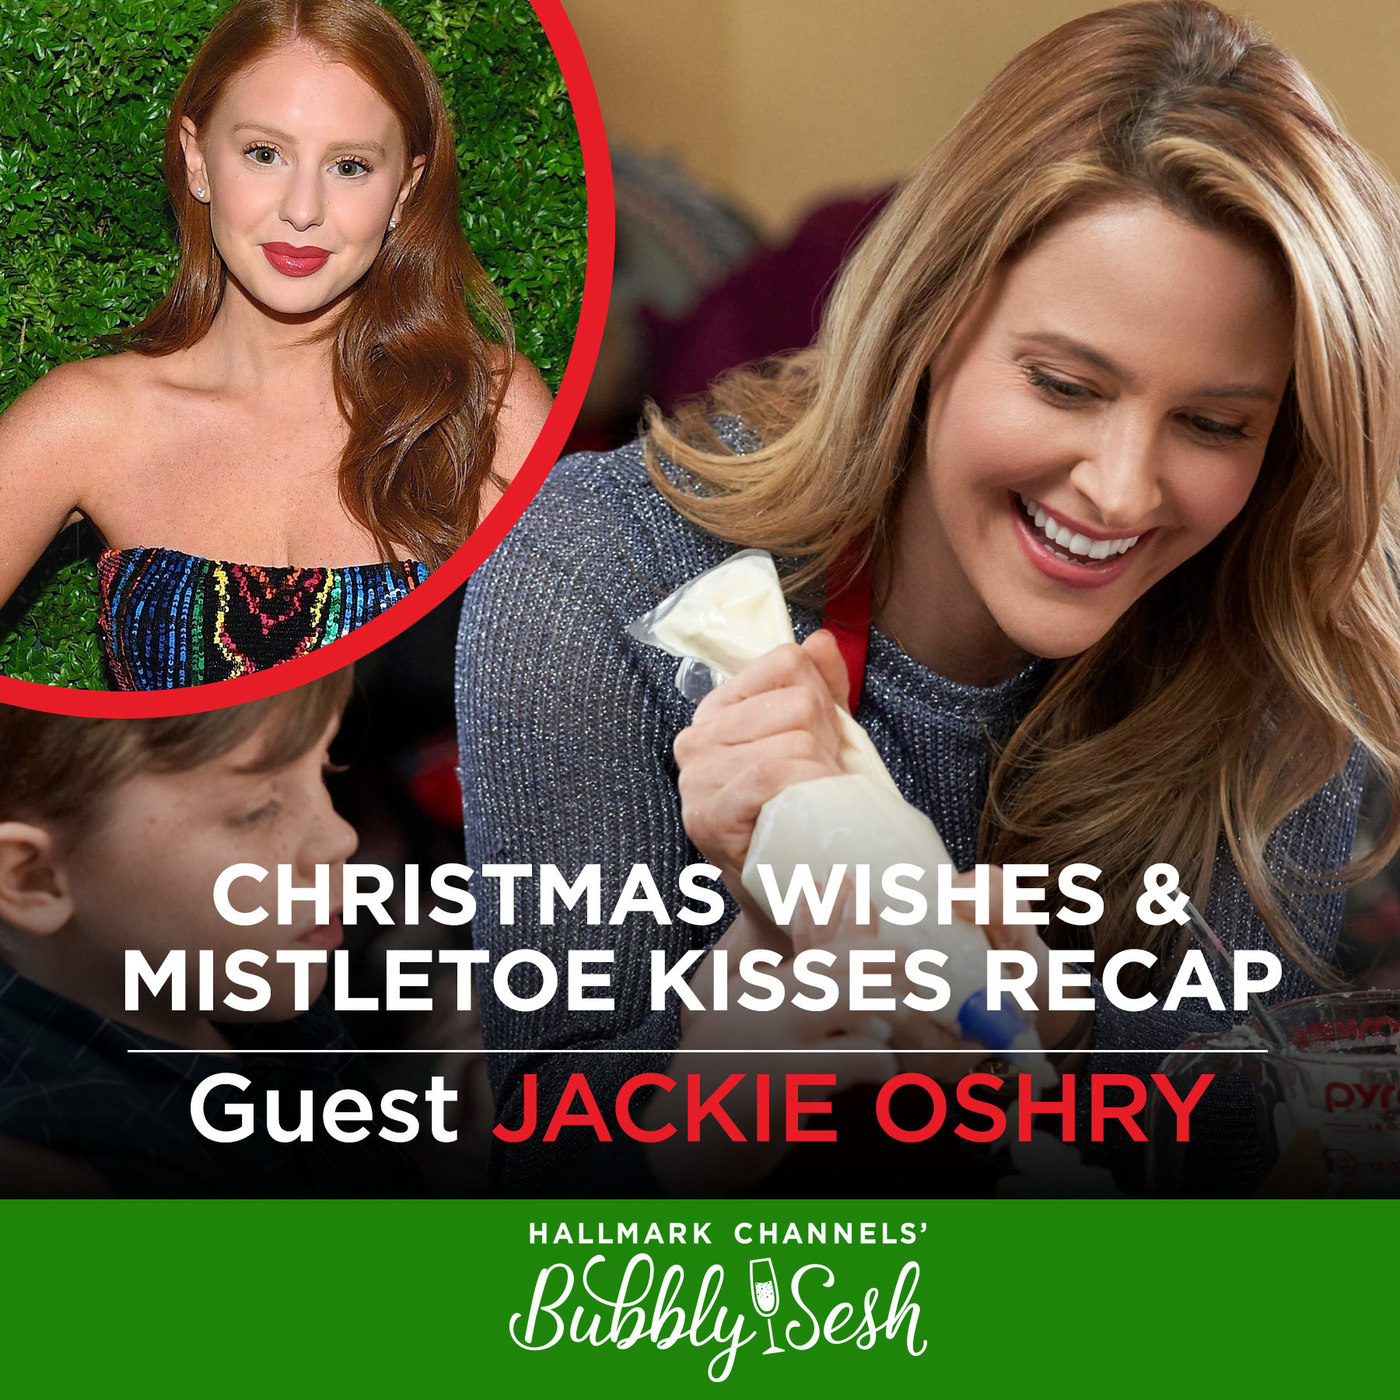 Christmas Wishes & Mistletoe Kisses Recap with Jackie Oshry